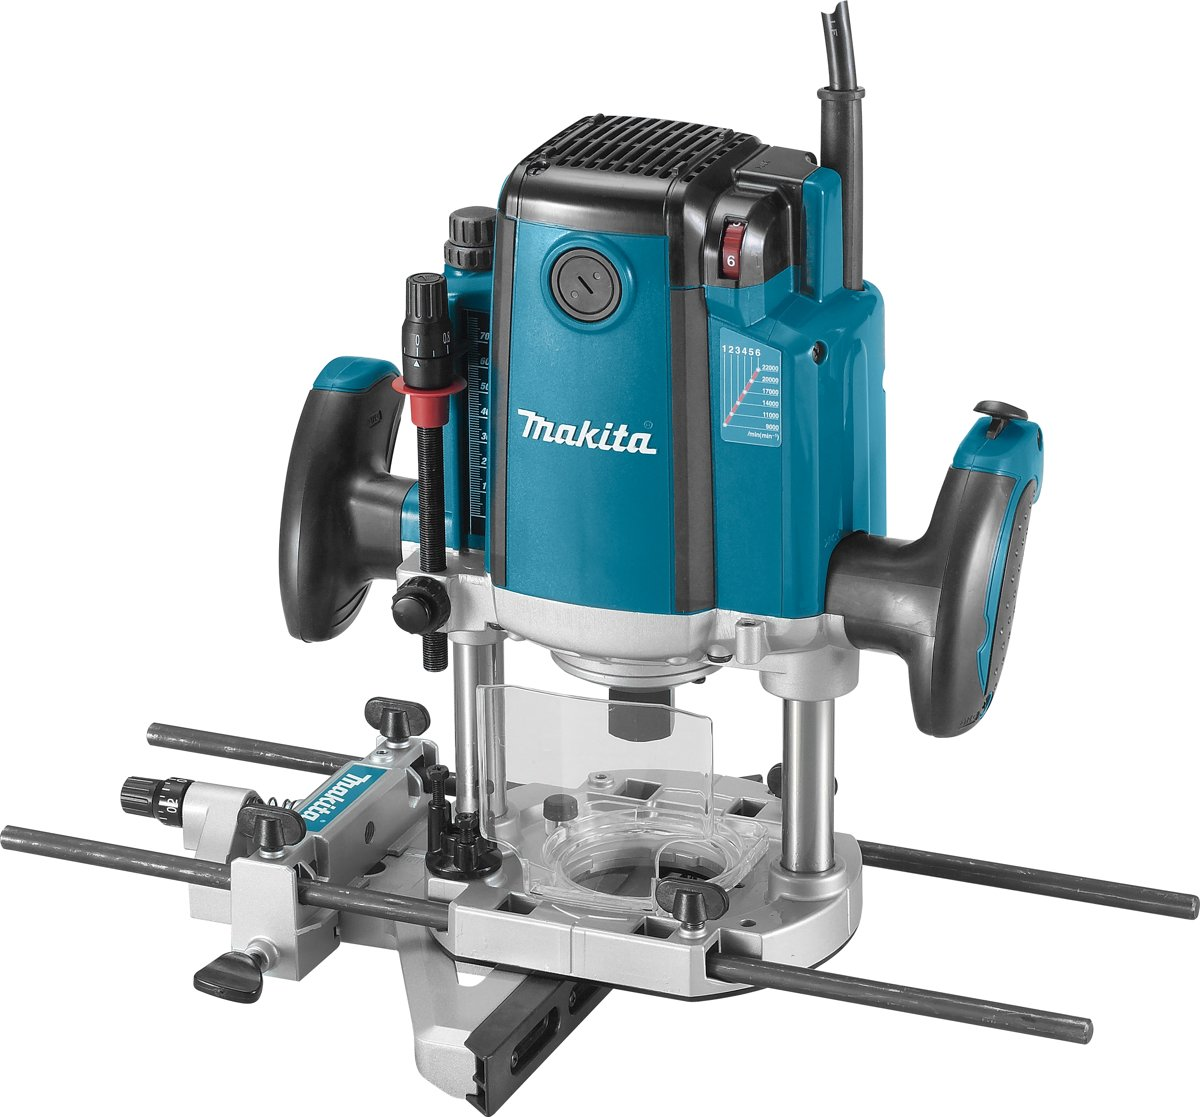 Makita Freesmachine Rp2300fcx Bovenfrees 2300w